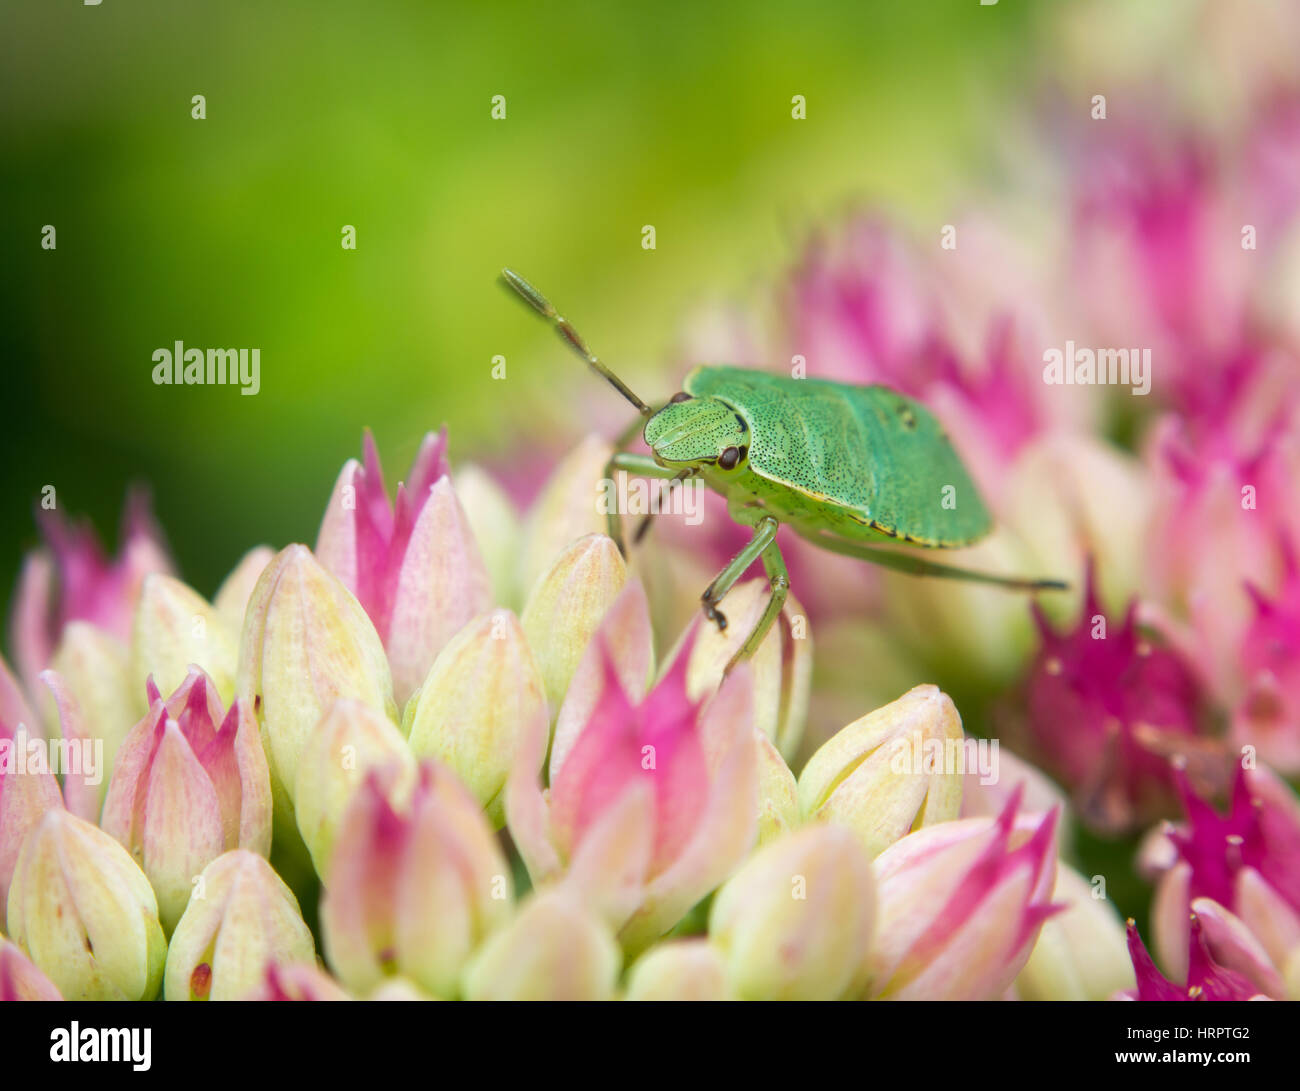 Tiny pink flowers stock photos tiny pink flowers stock images alamy colorful scene of a green stinkbug on top of some tiny pink flowers stock mightylinksfo